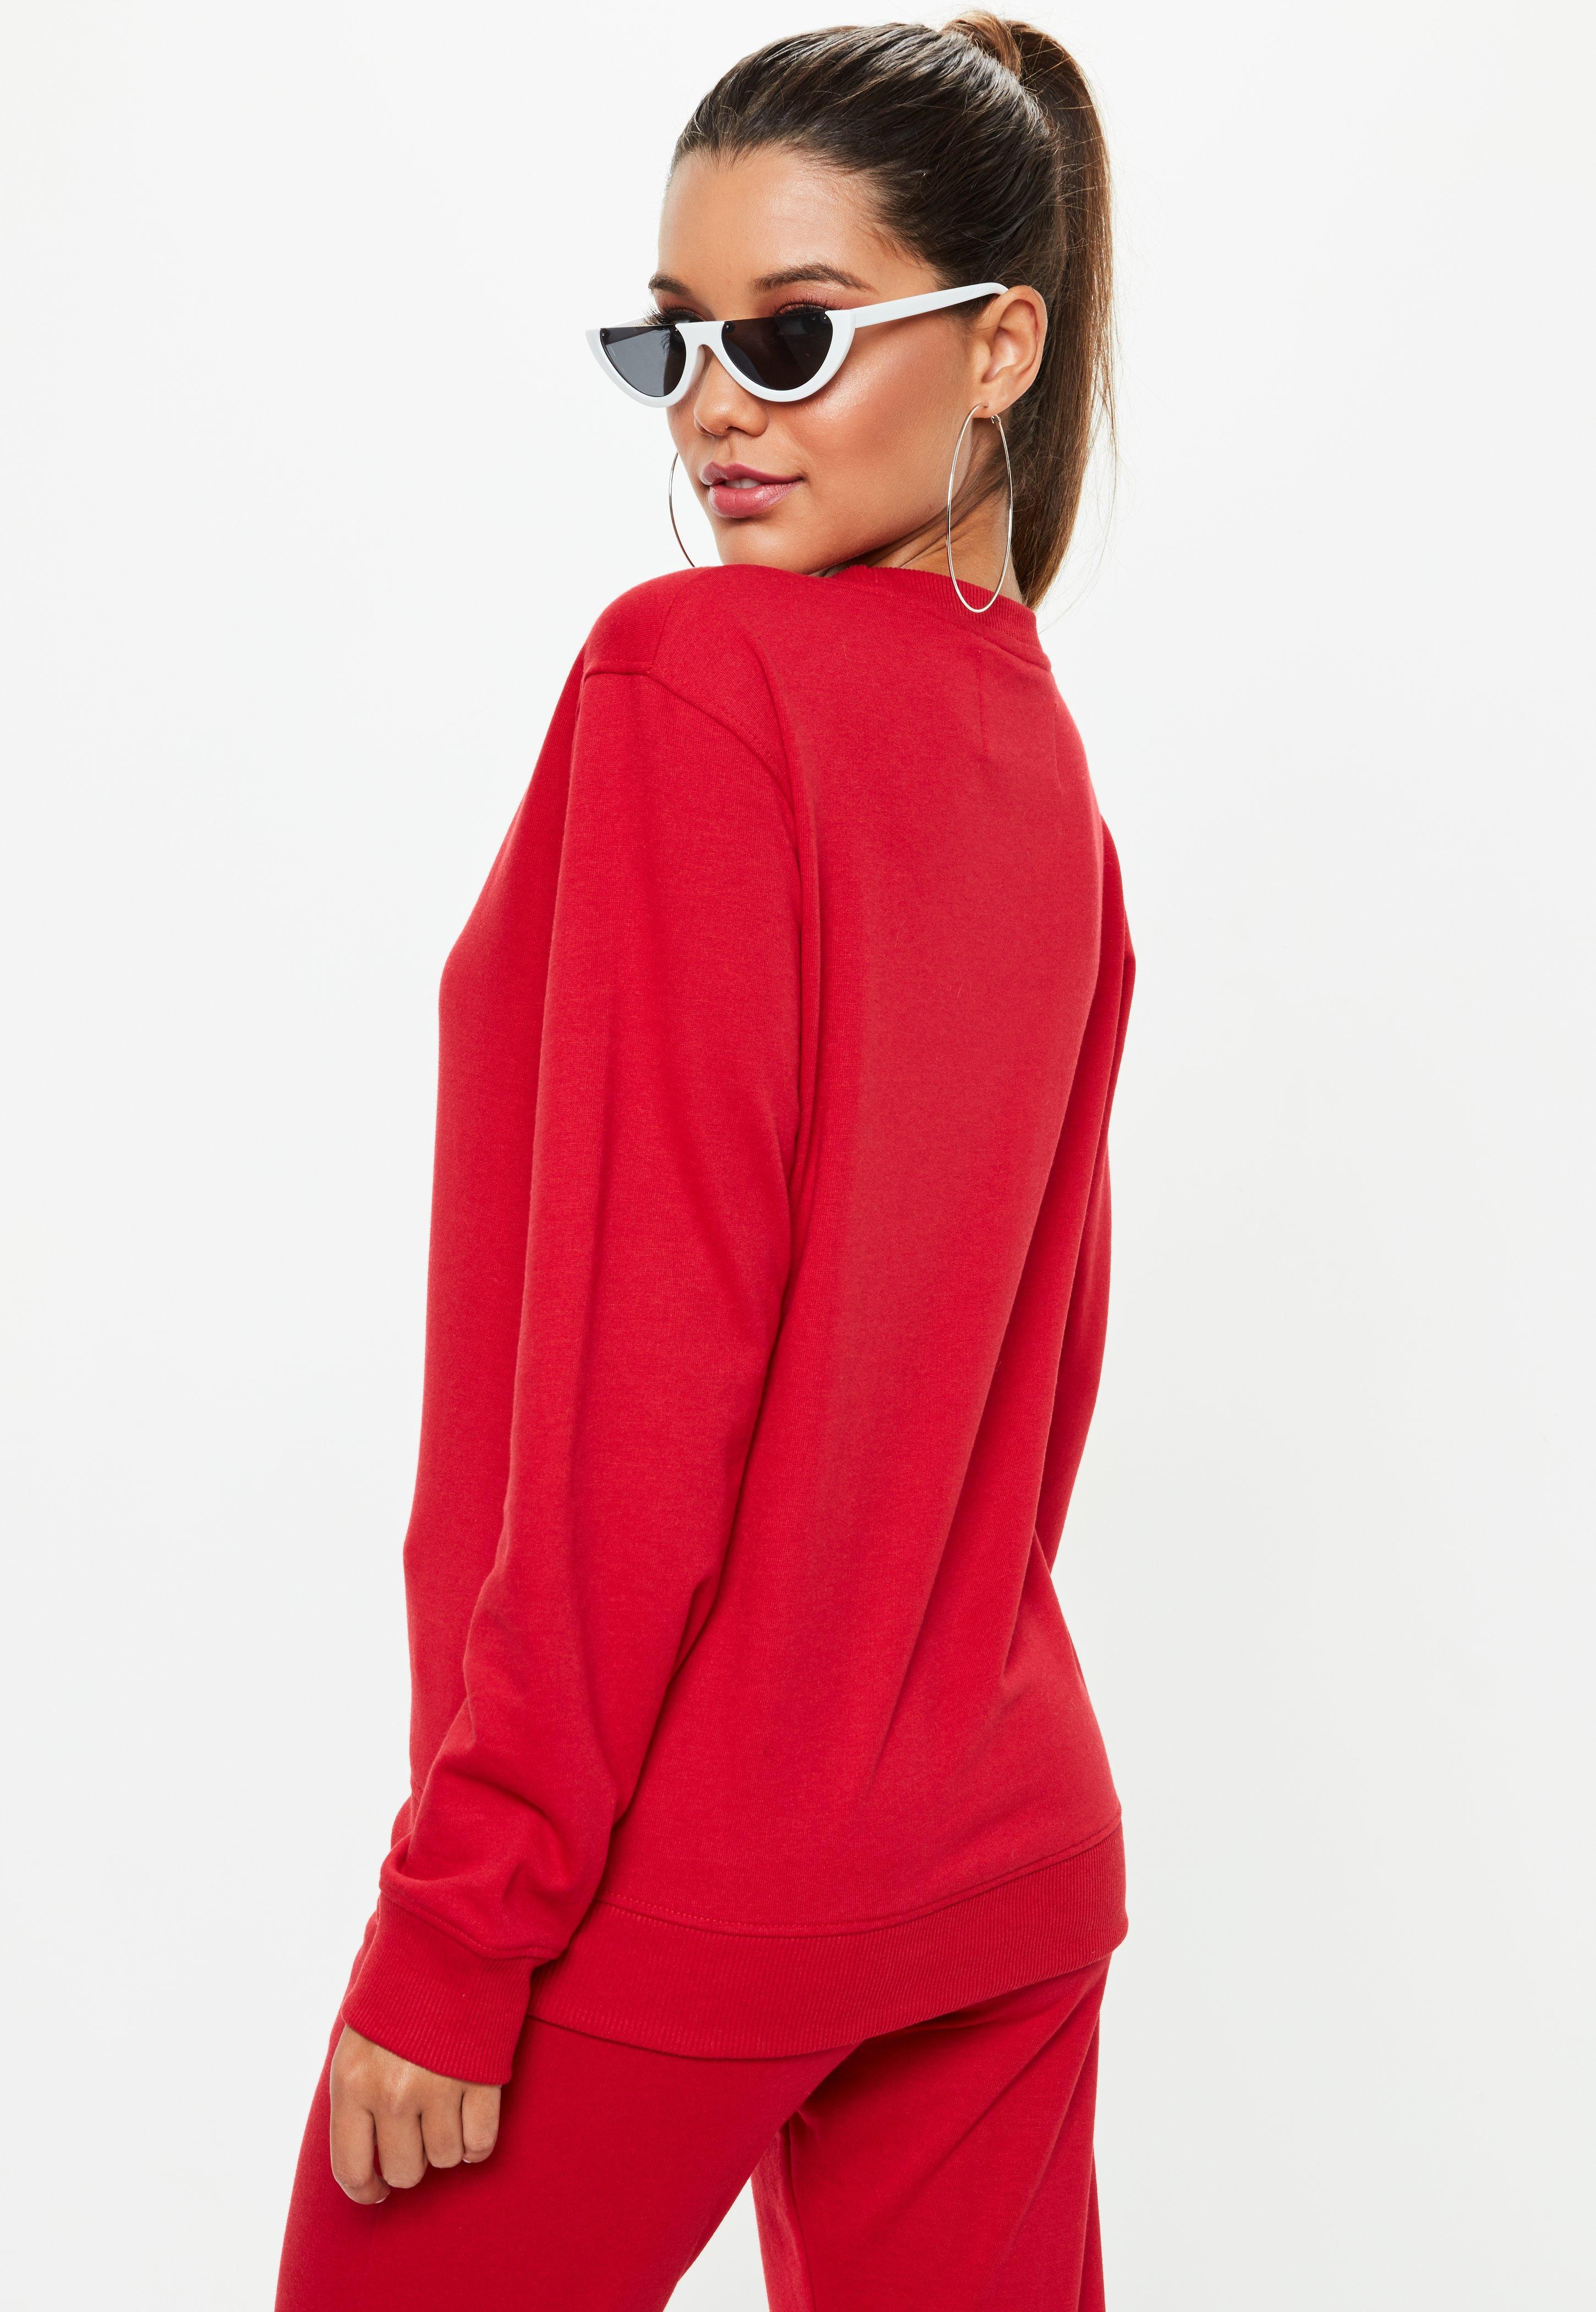 Printed Lyst Sweatshirt City In Red Missguided Barbie X Trwq7rX